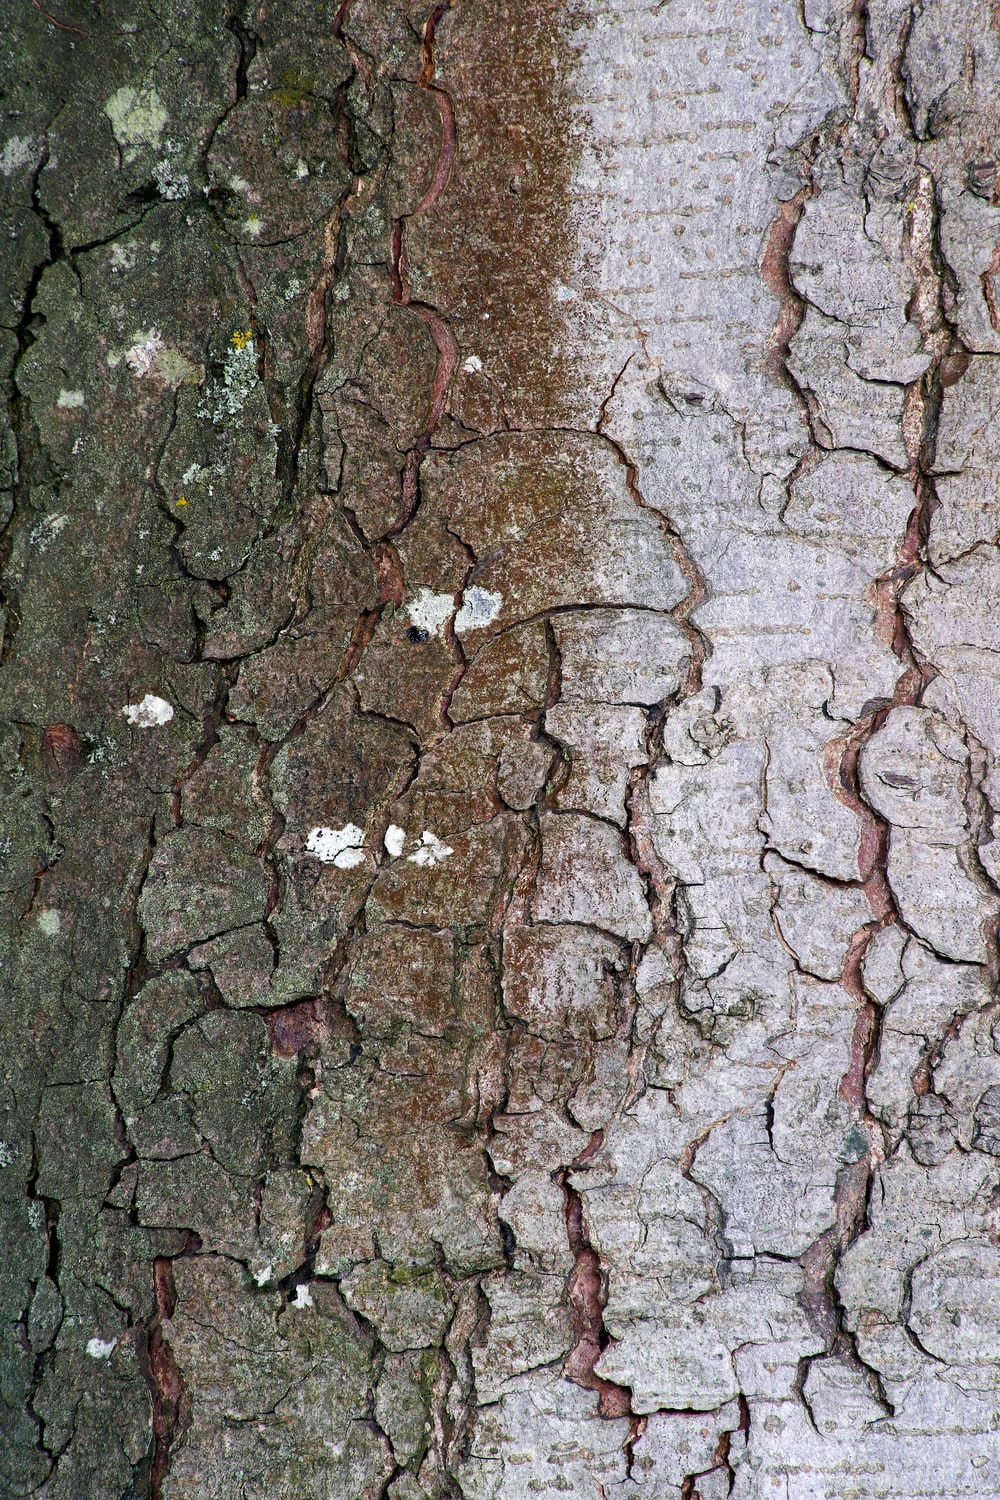 brown and gray tree trunk surface